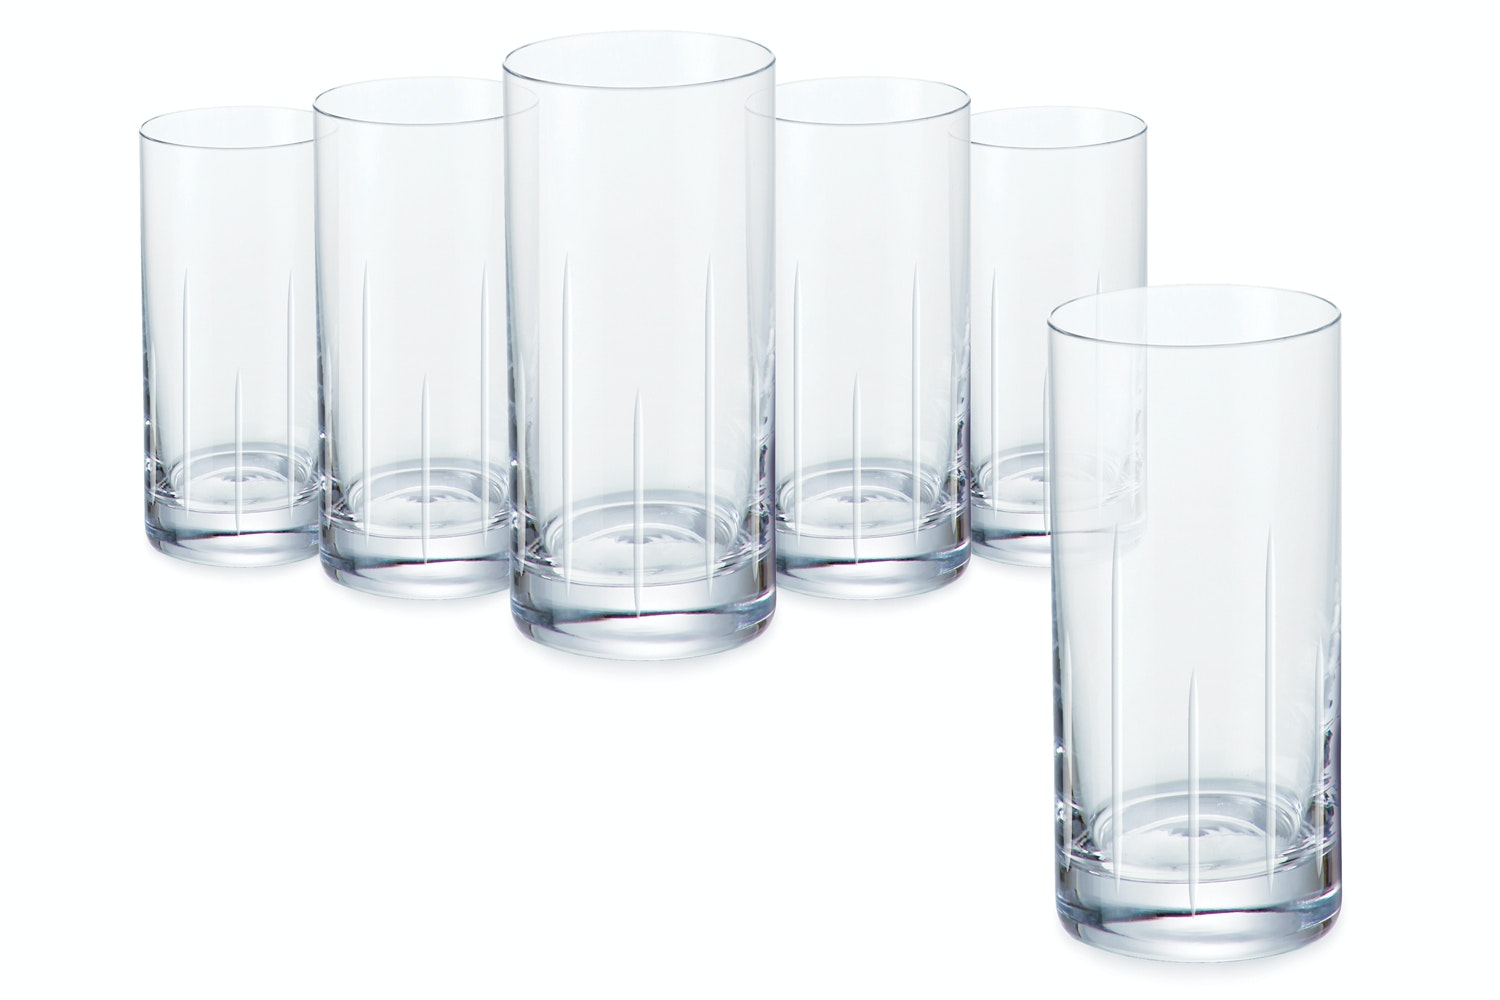 Tranquility Water Glass Hat Box|Set of 6